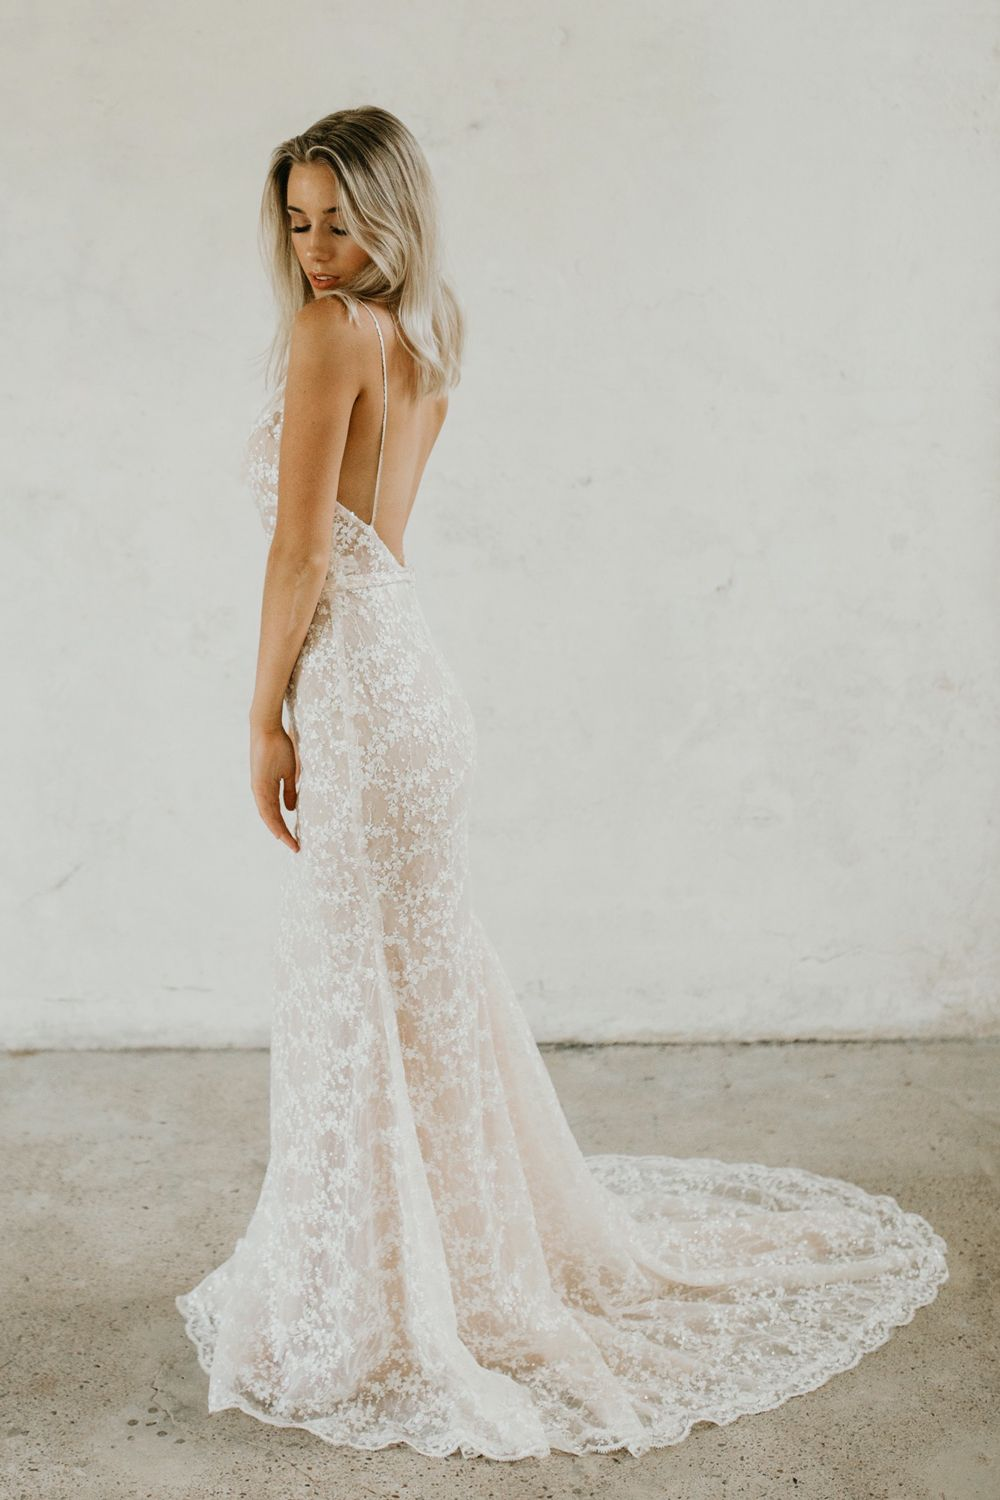 Venice Bridal Gown Timeless Classic Collection Goddess By Nature Australian Wedding Dresses Wedding Gown Backless Bridal Gowns,Gorgeous Wedding Mermaid Wedding Dresses 2020